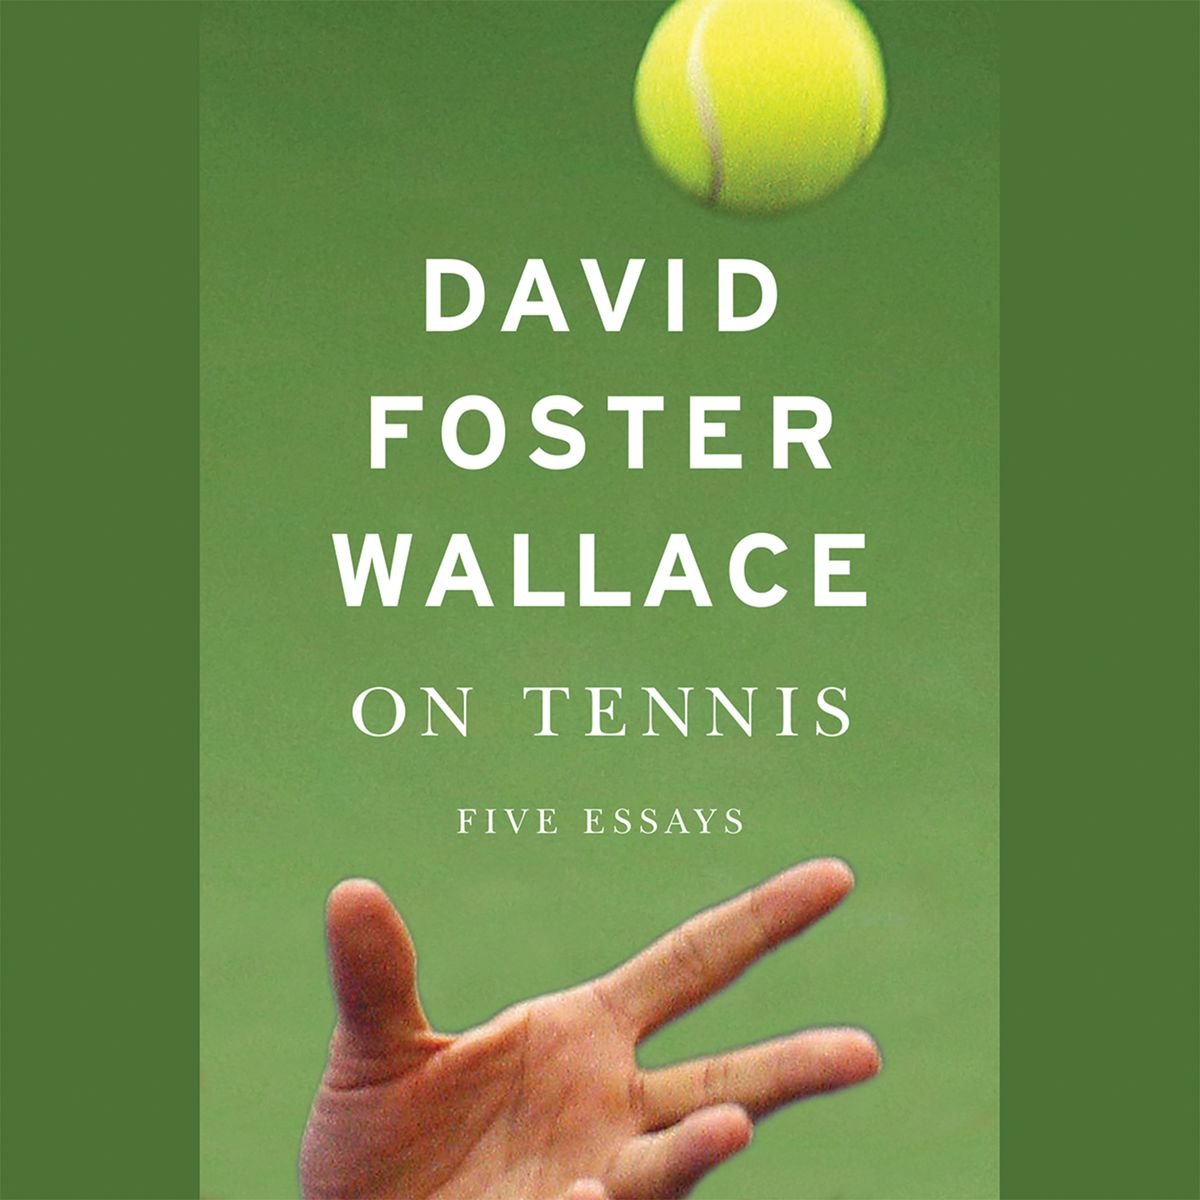 015 David Foster Wallace Essays Essay Example On Tennis Formidable Amazon And The Long Thing New Novels Cruise Ship Full